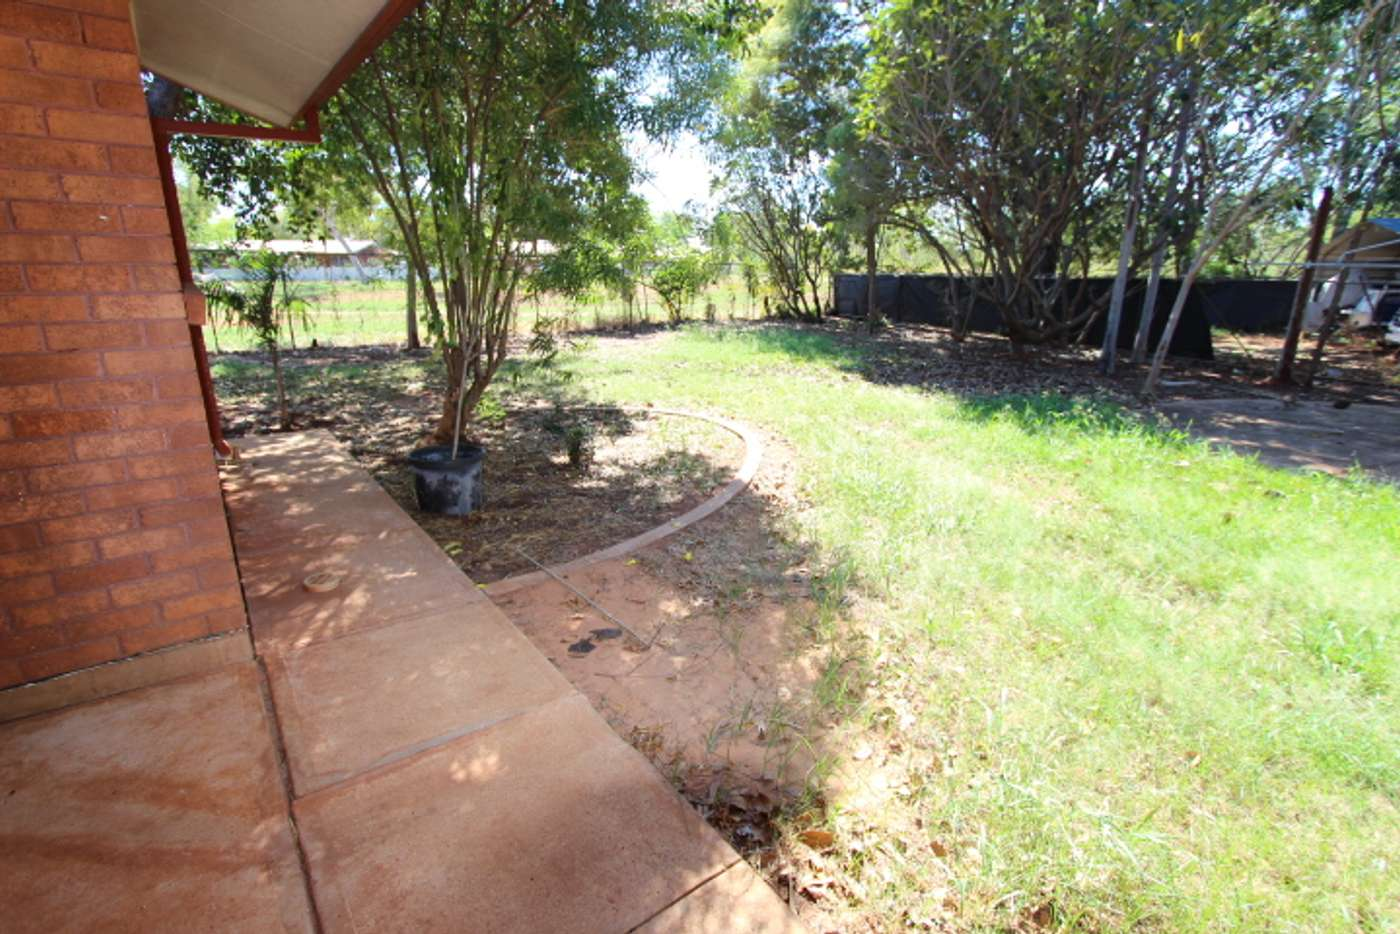 Main view of Homely house listing, 9 Hudspeth Place, Katherine NT 850